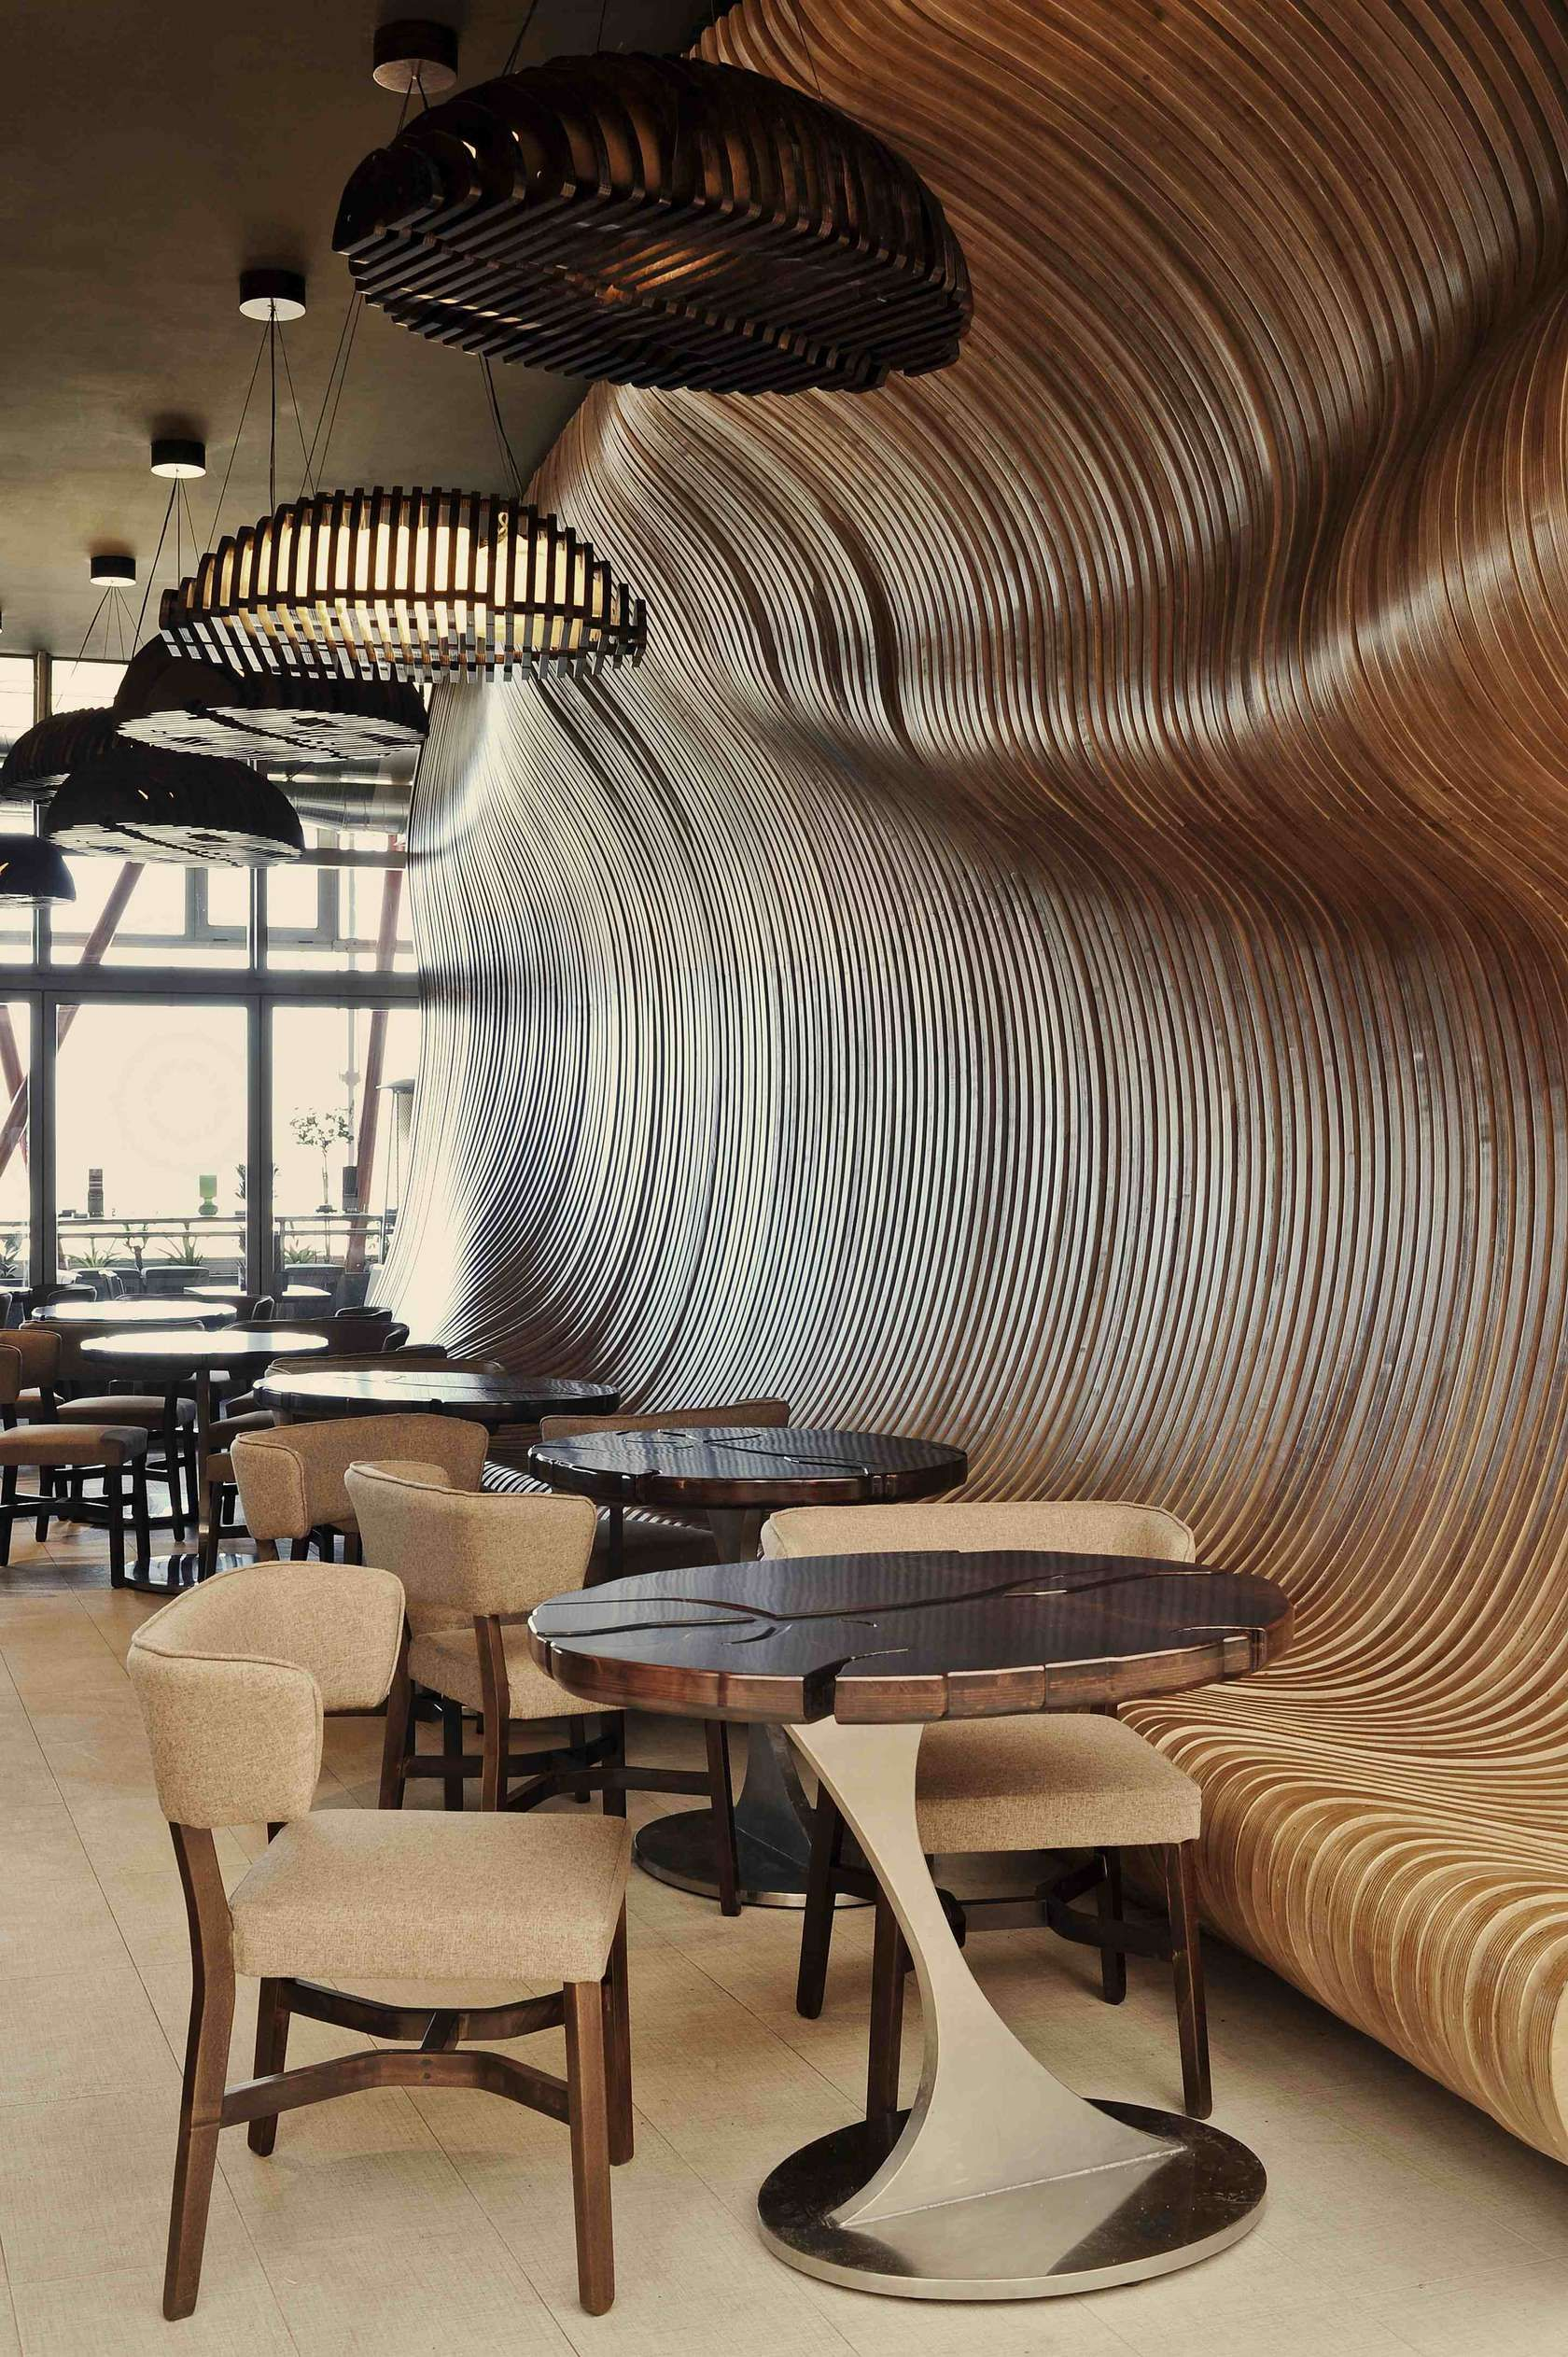 Don café house is a coffee shop in kosova realized for the first time in pristina and will open chain coffee shops throughout kosova